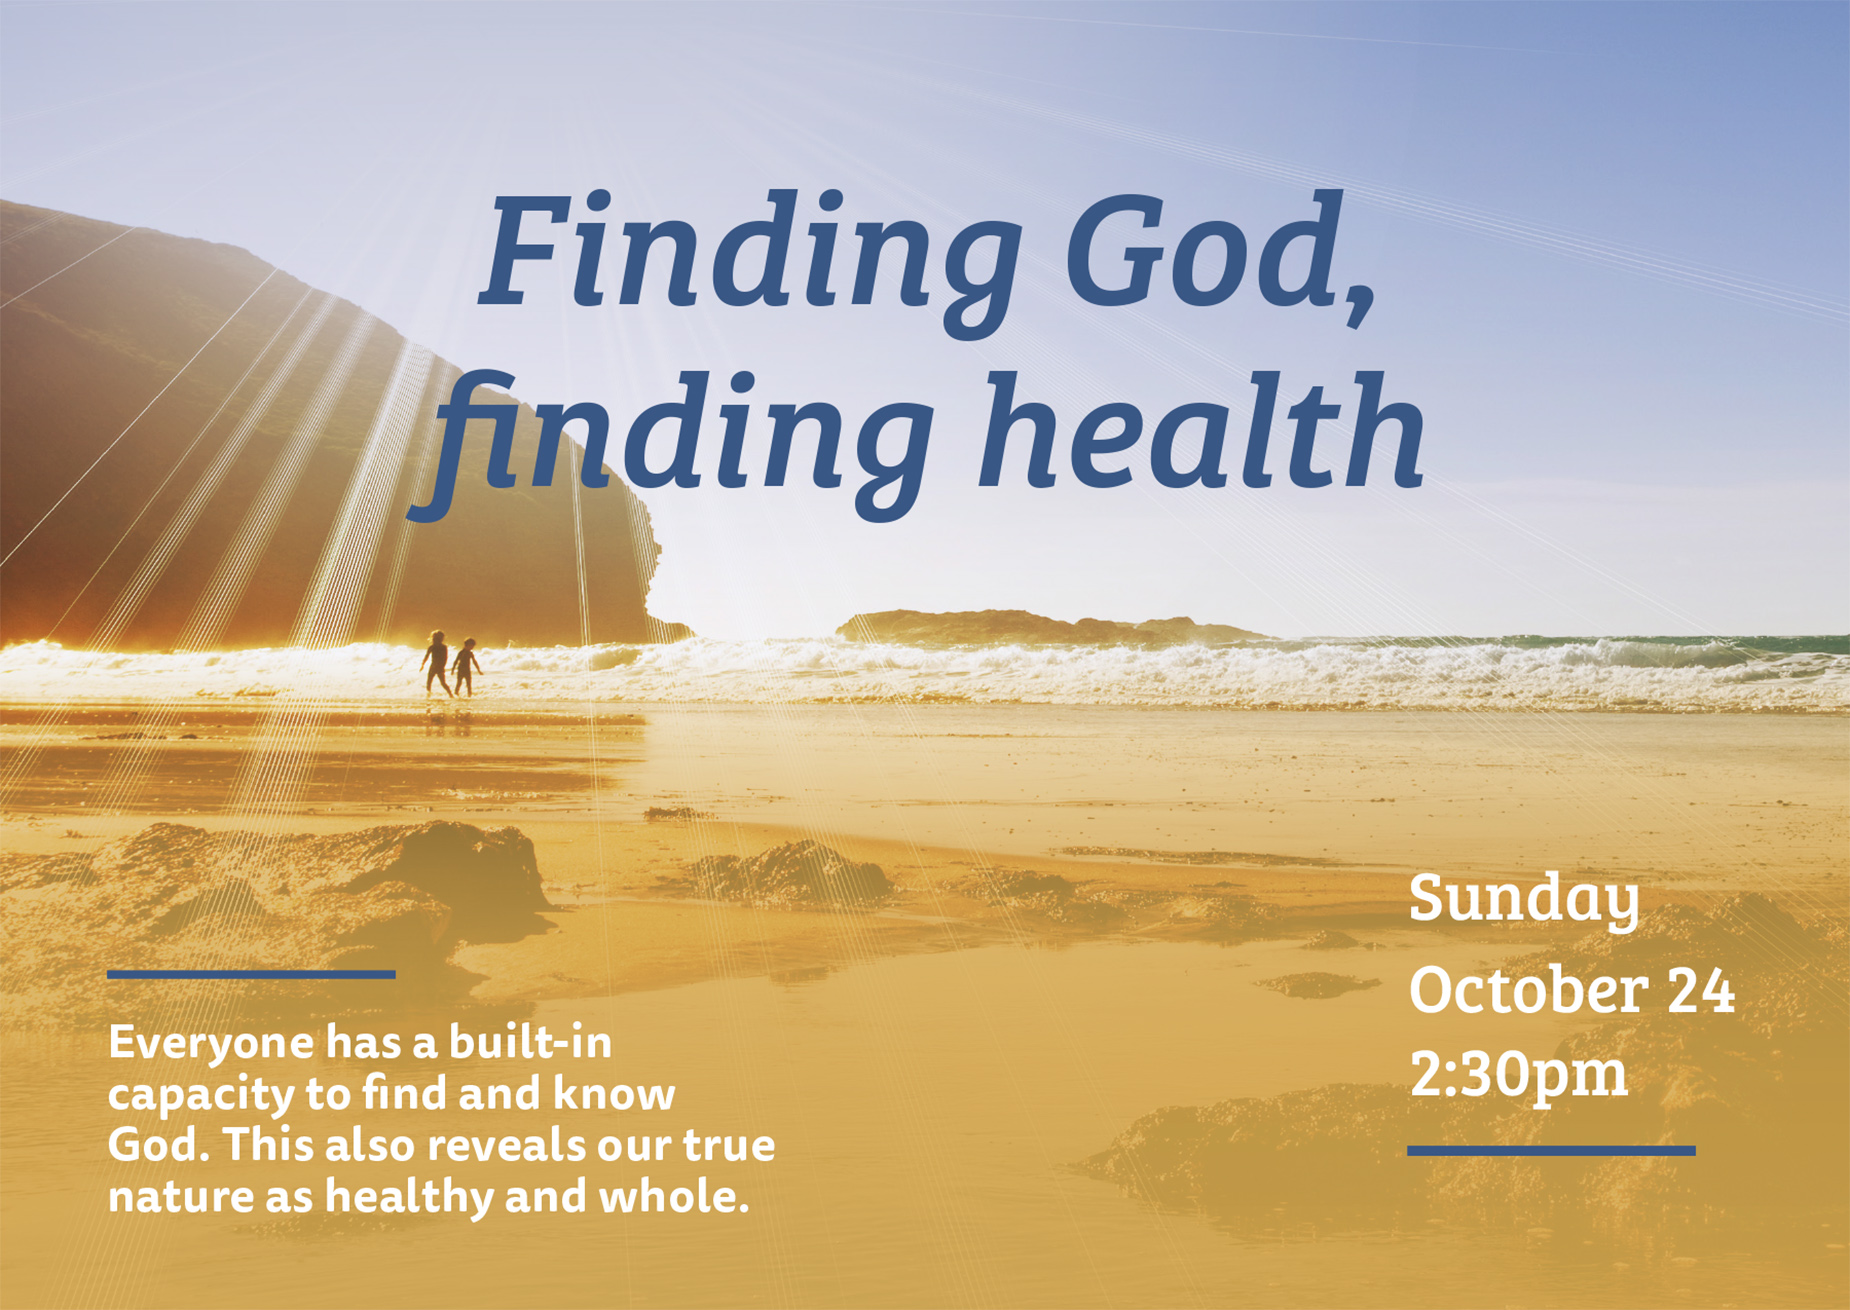 Finding God, finding health